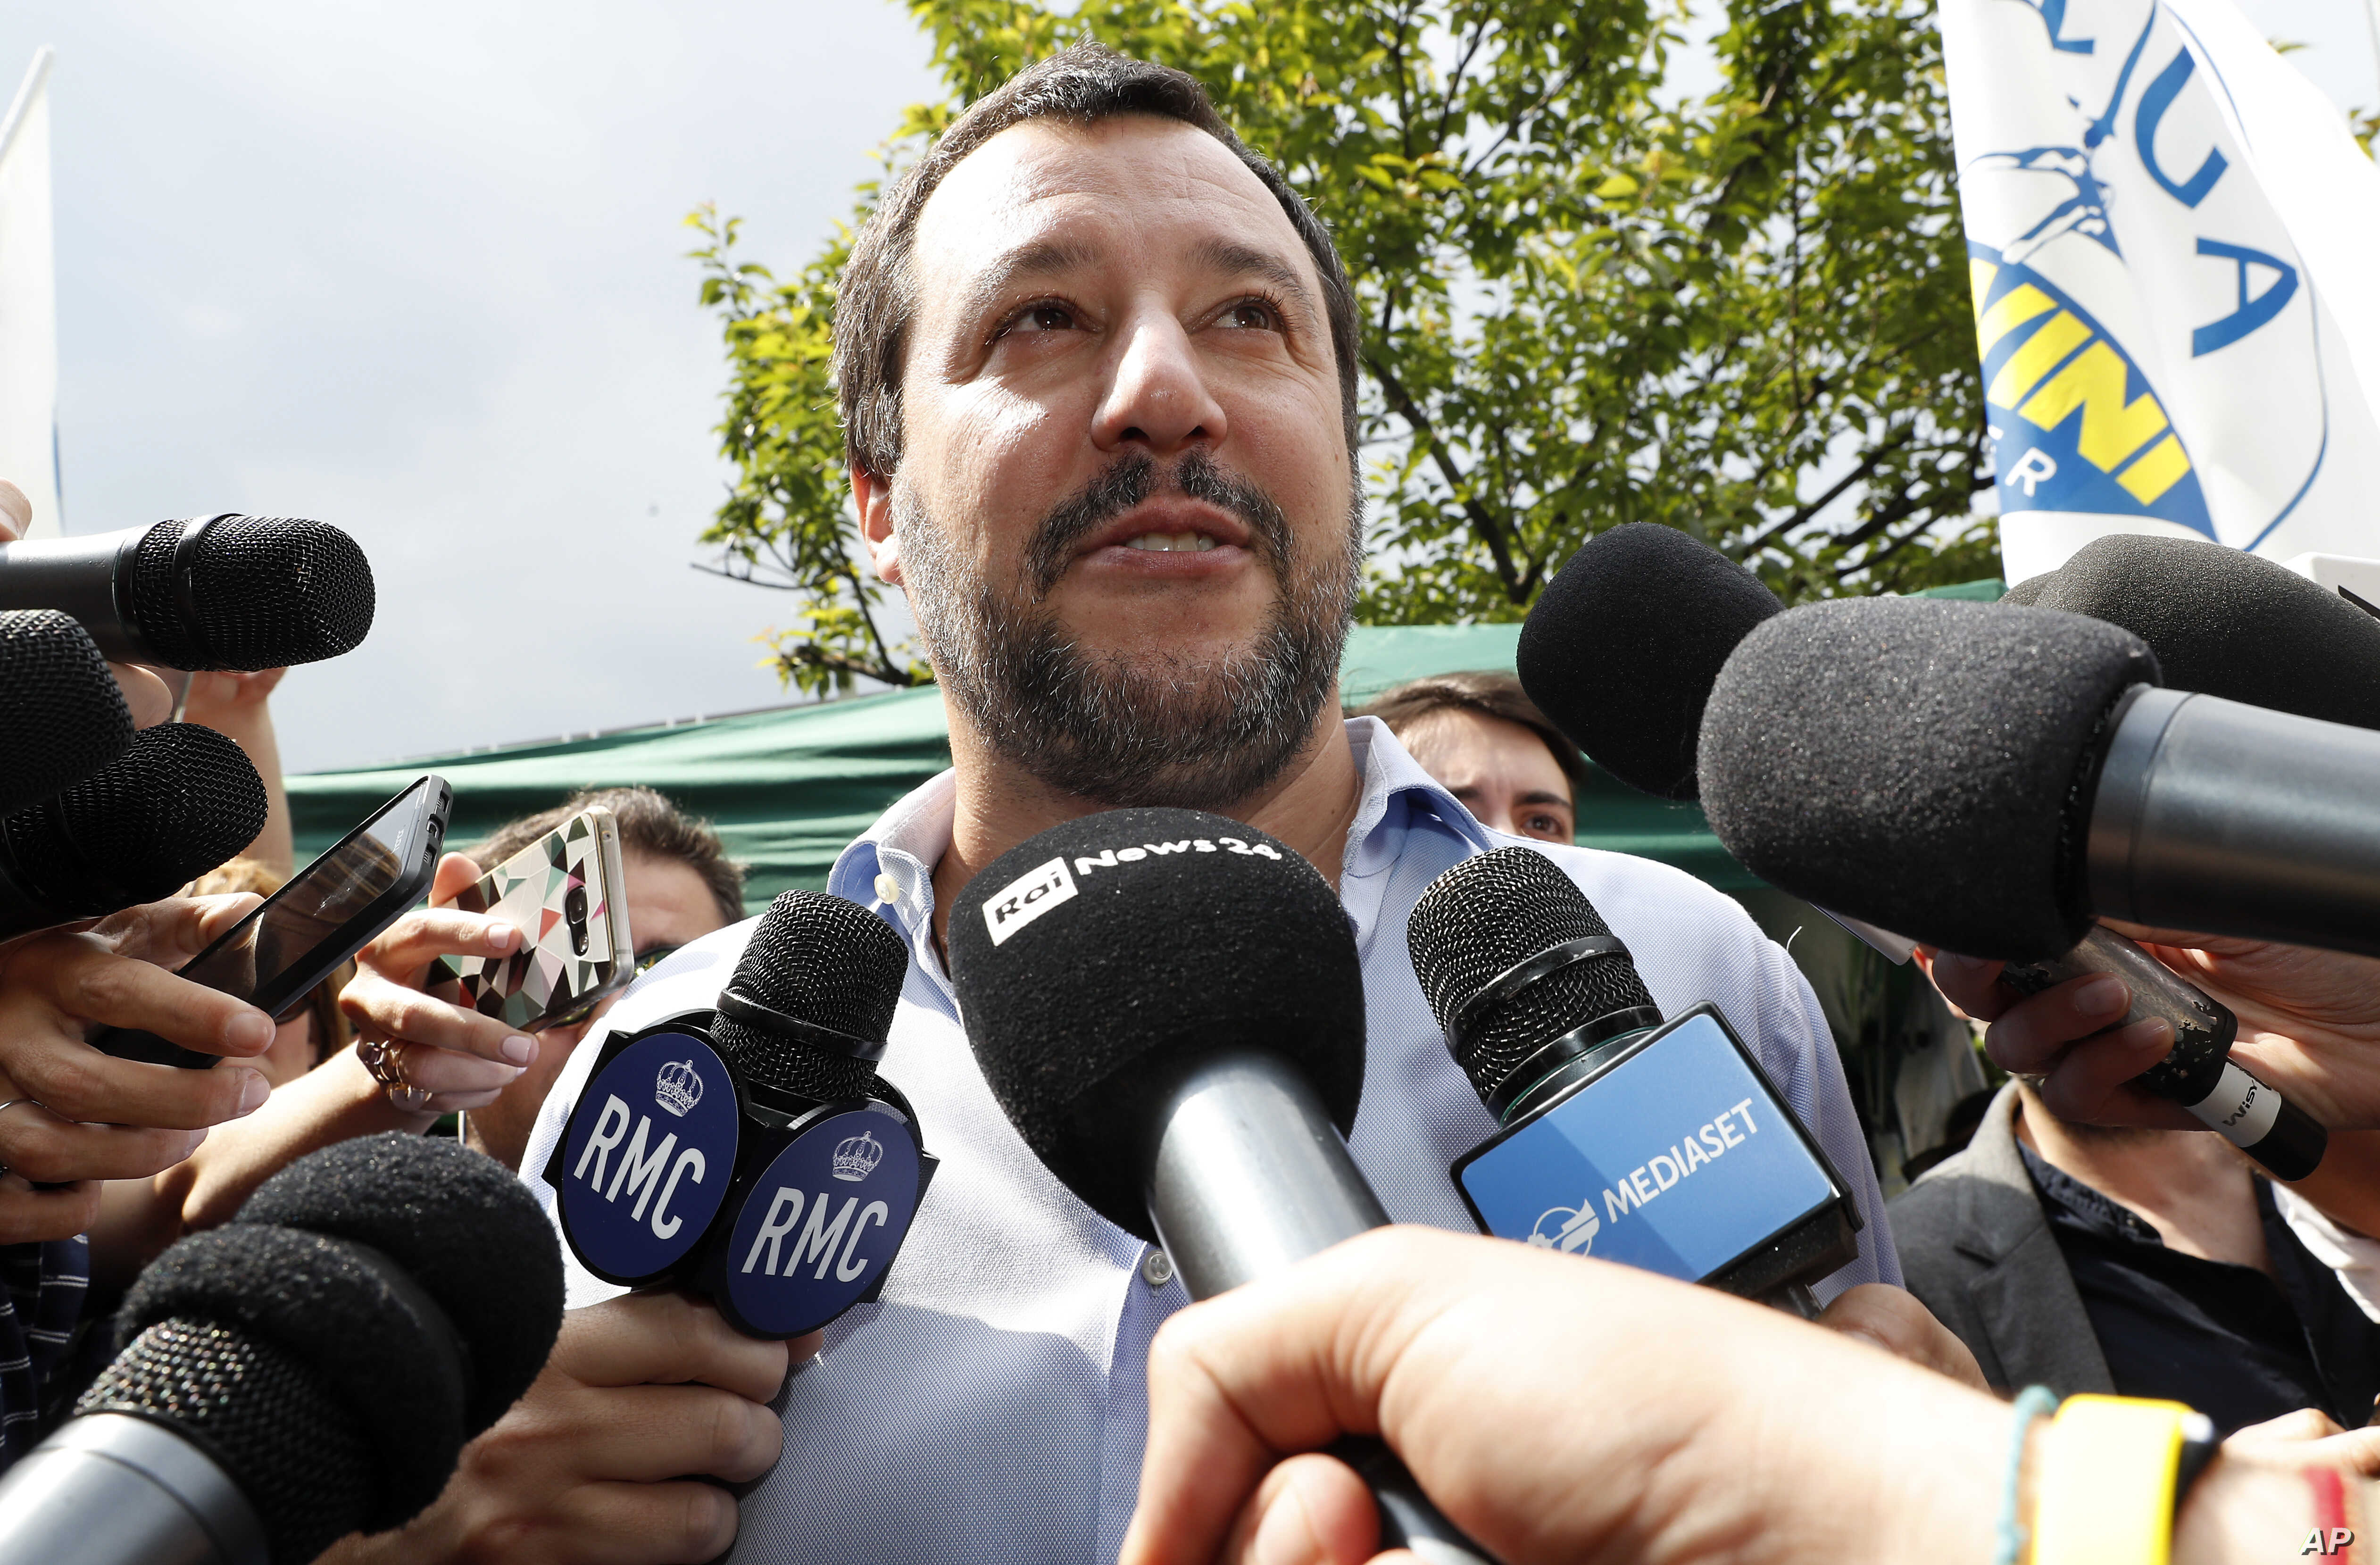 FILE - The League party leader, Matteo Salvini, meets reporters in Milan, Italy, May 19, 2018.